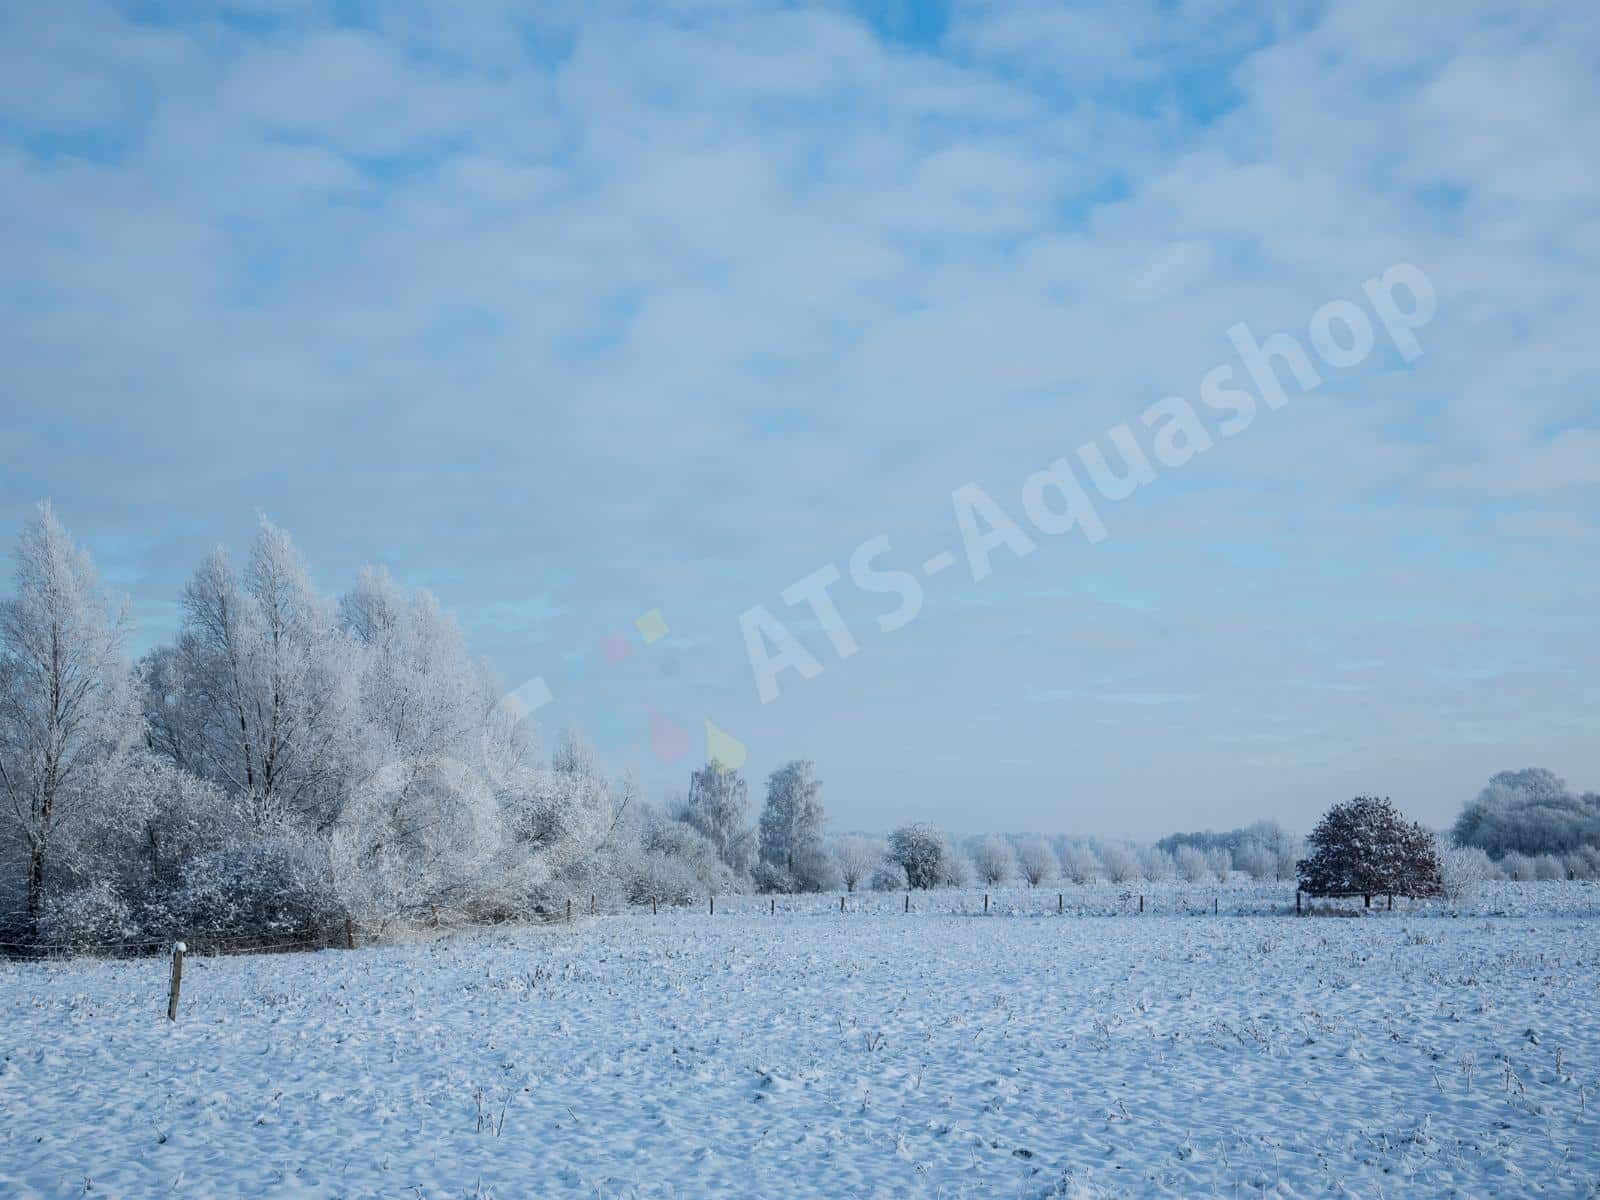 winterlandschaft andreas tanke 0158 11